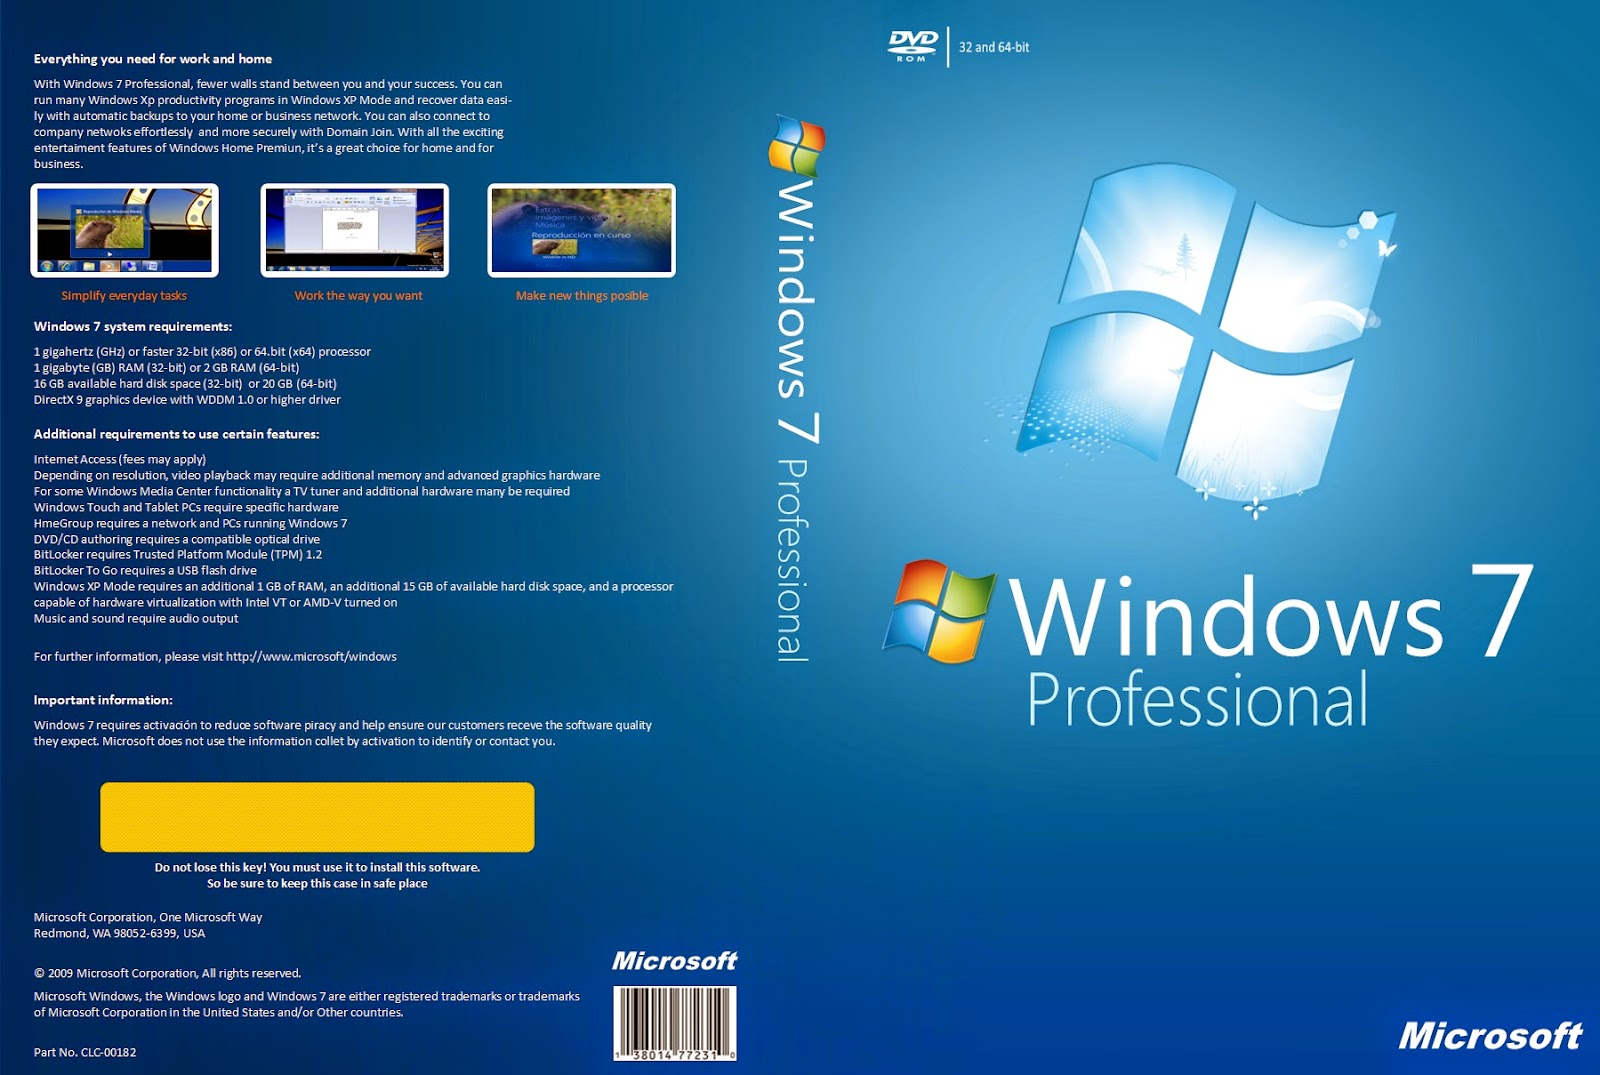 windows 7 ultimate iso download 64 bit microsoft